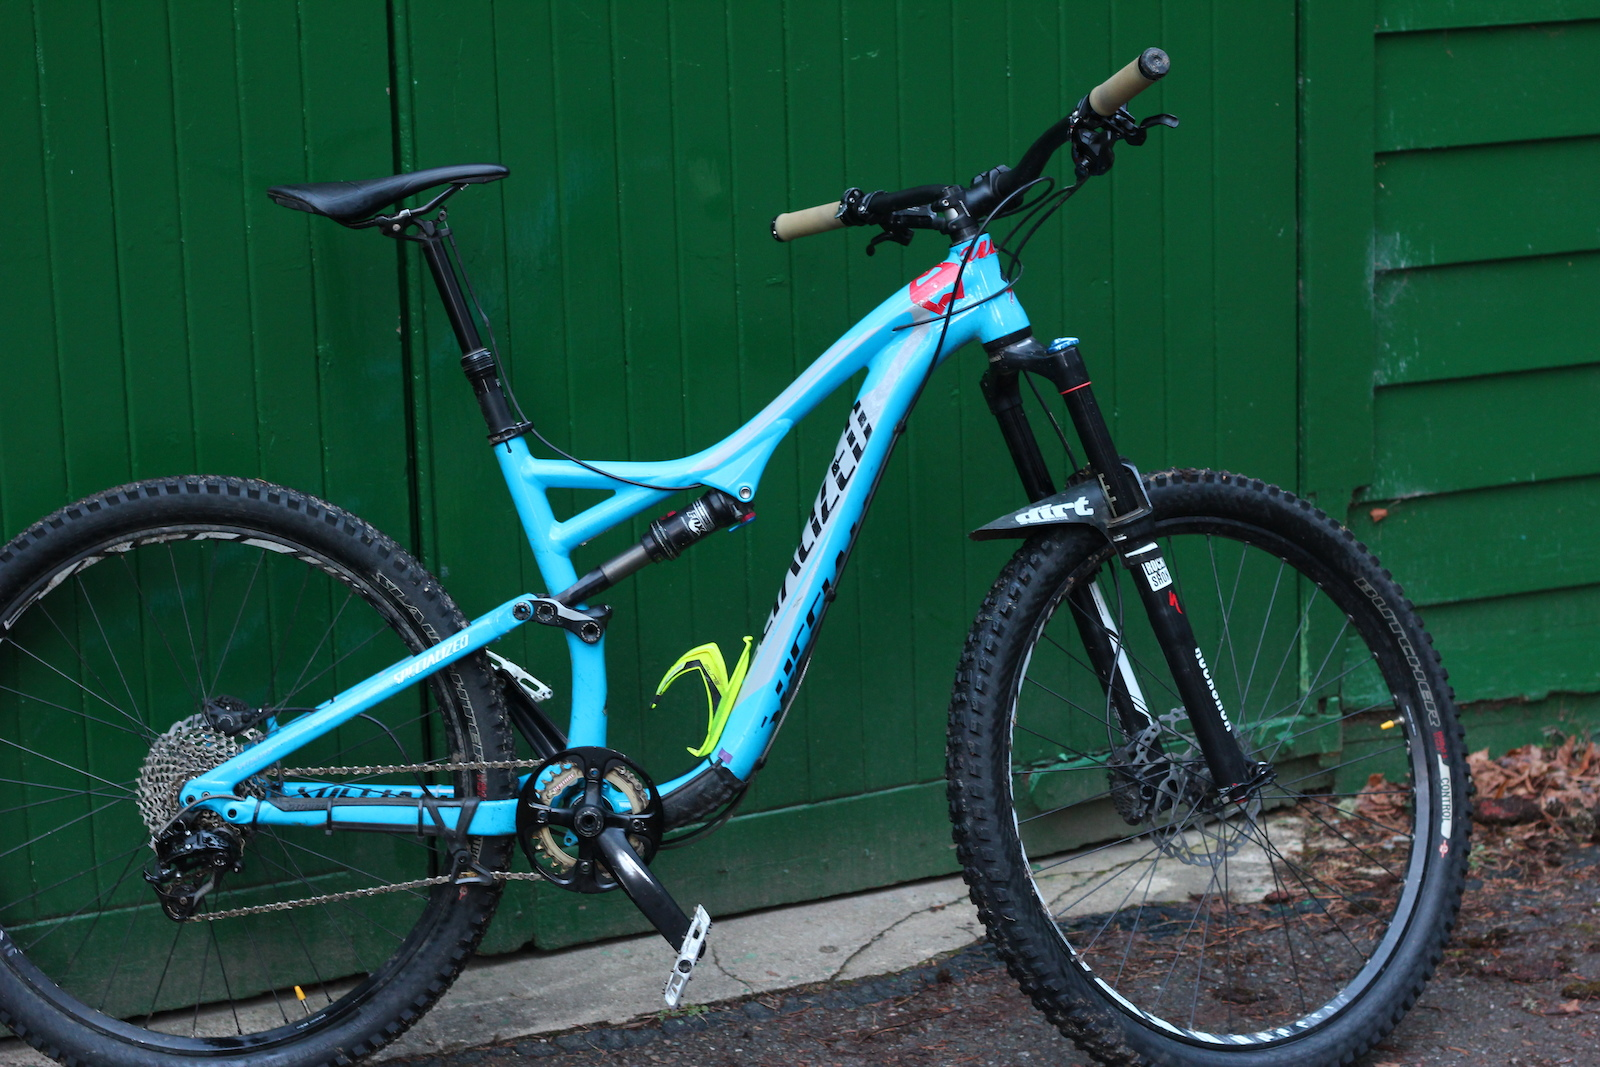 2015 Specialized Stumpjumper EVO 650B - Medium